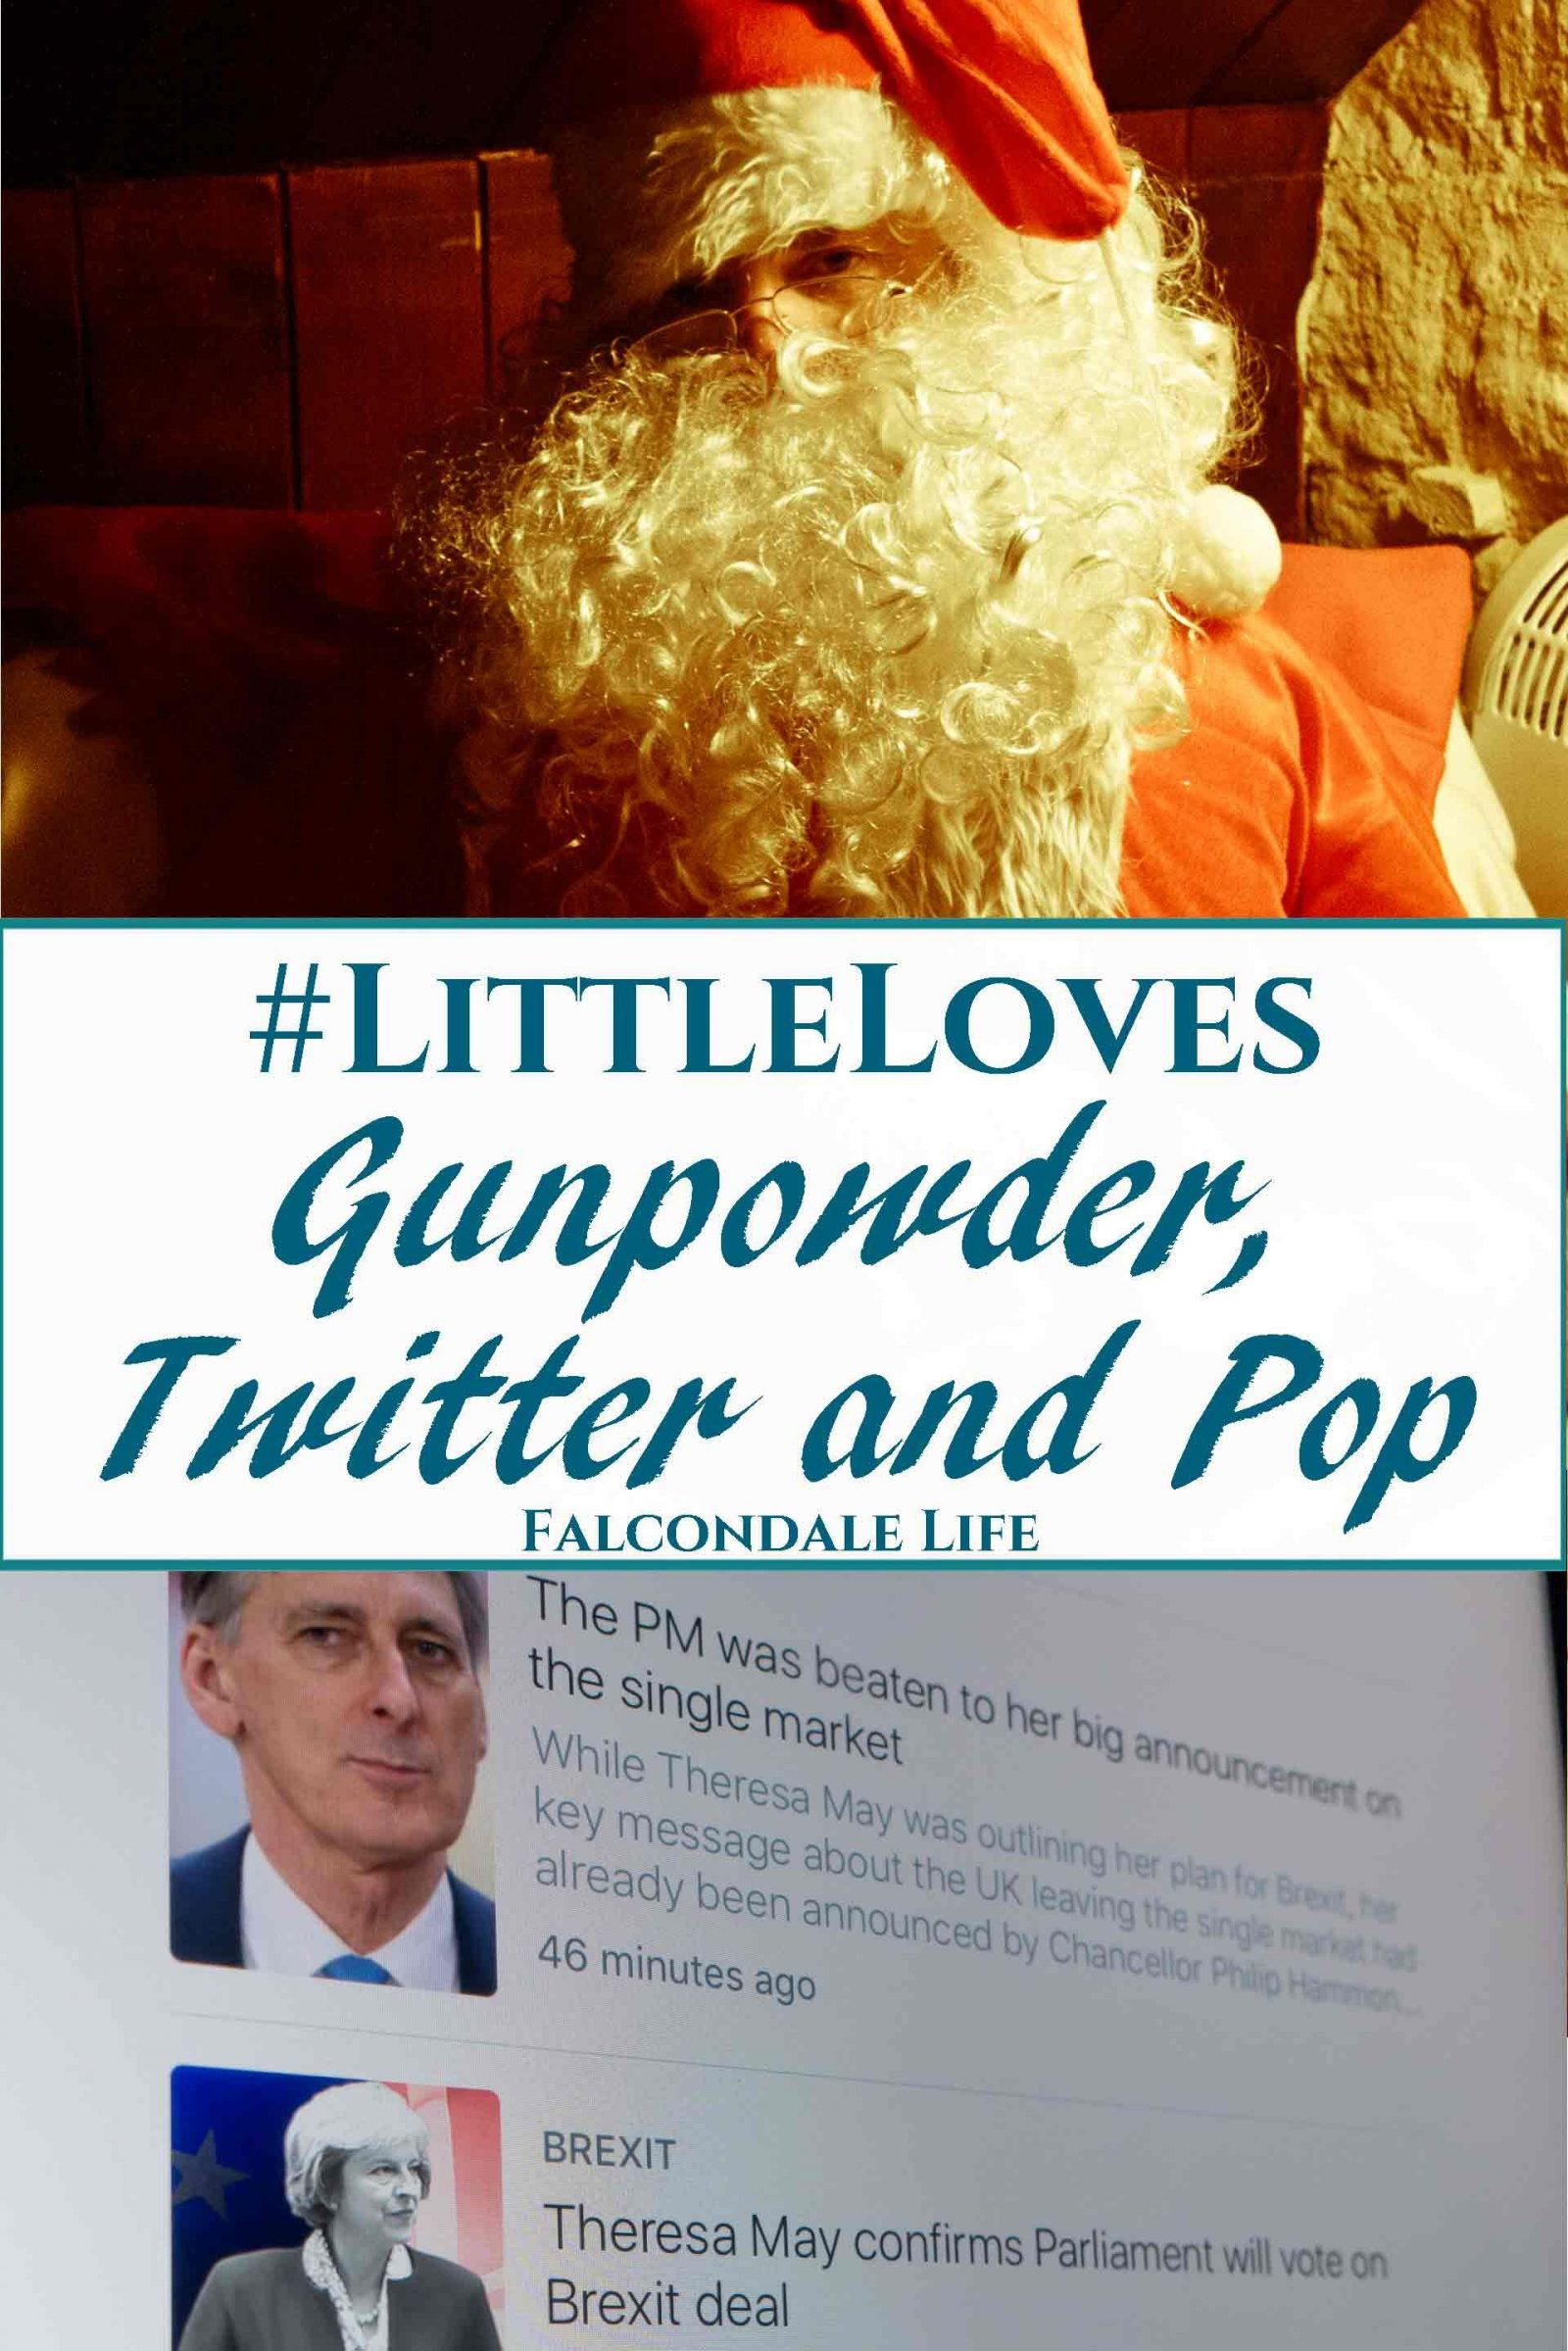 Gunpowder, Twitter and Pop - #LittleLoves linkup on Falcondale Life blog. Personal blog from my week by FalcondaleJan. TV shows, news and family life.